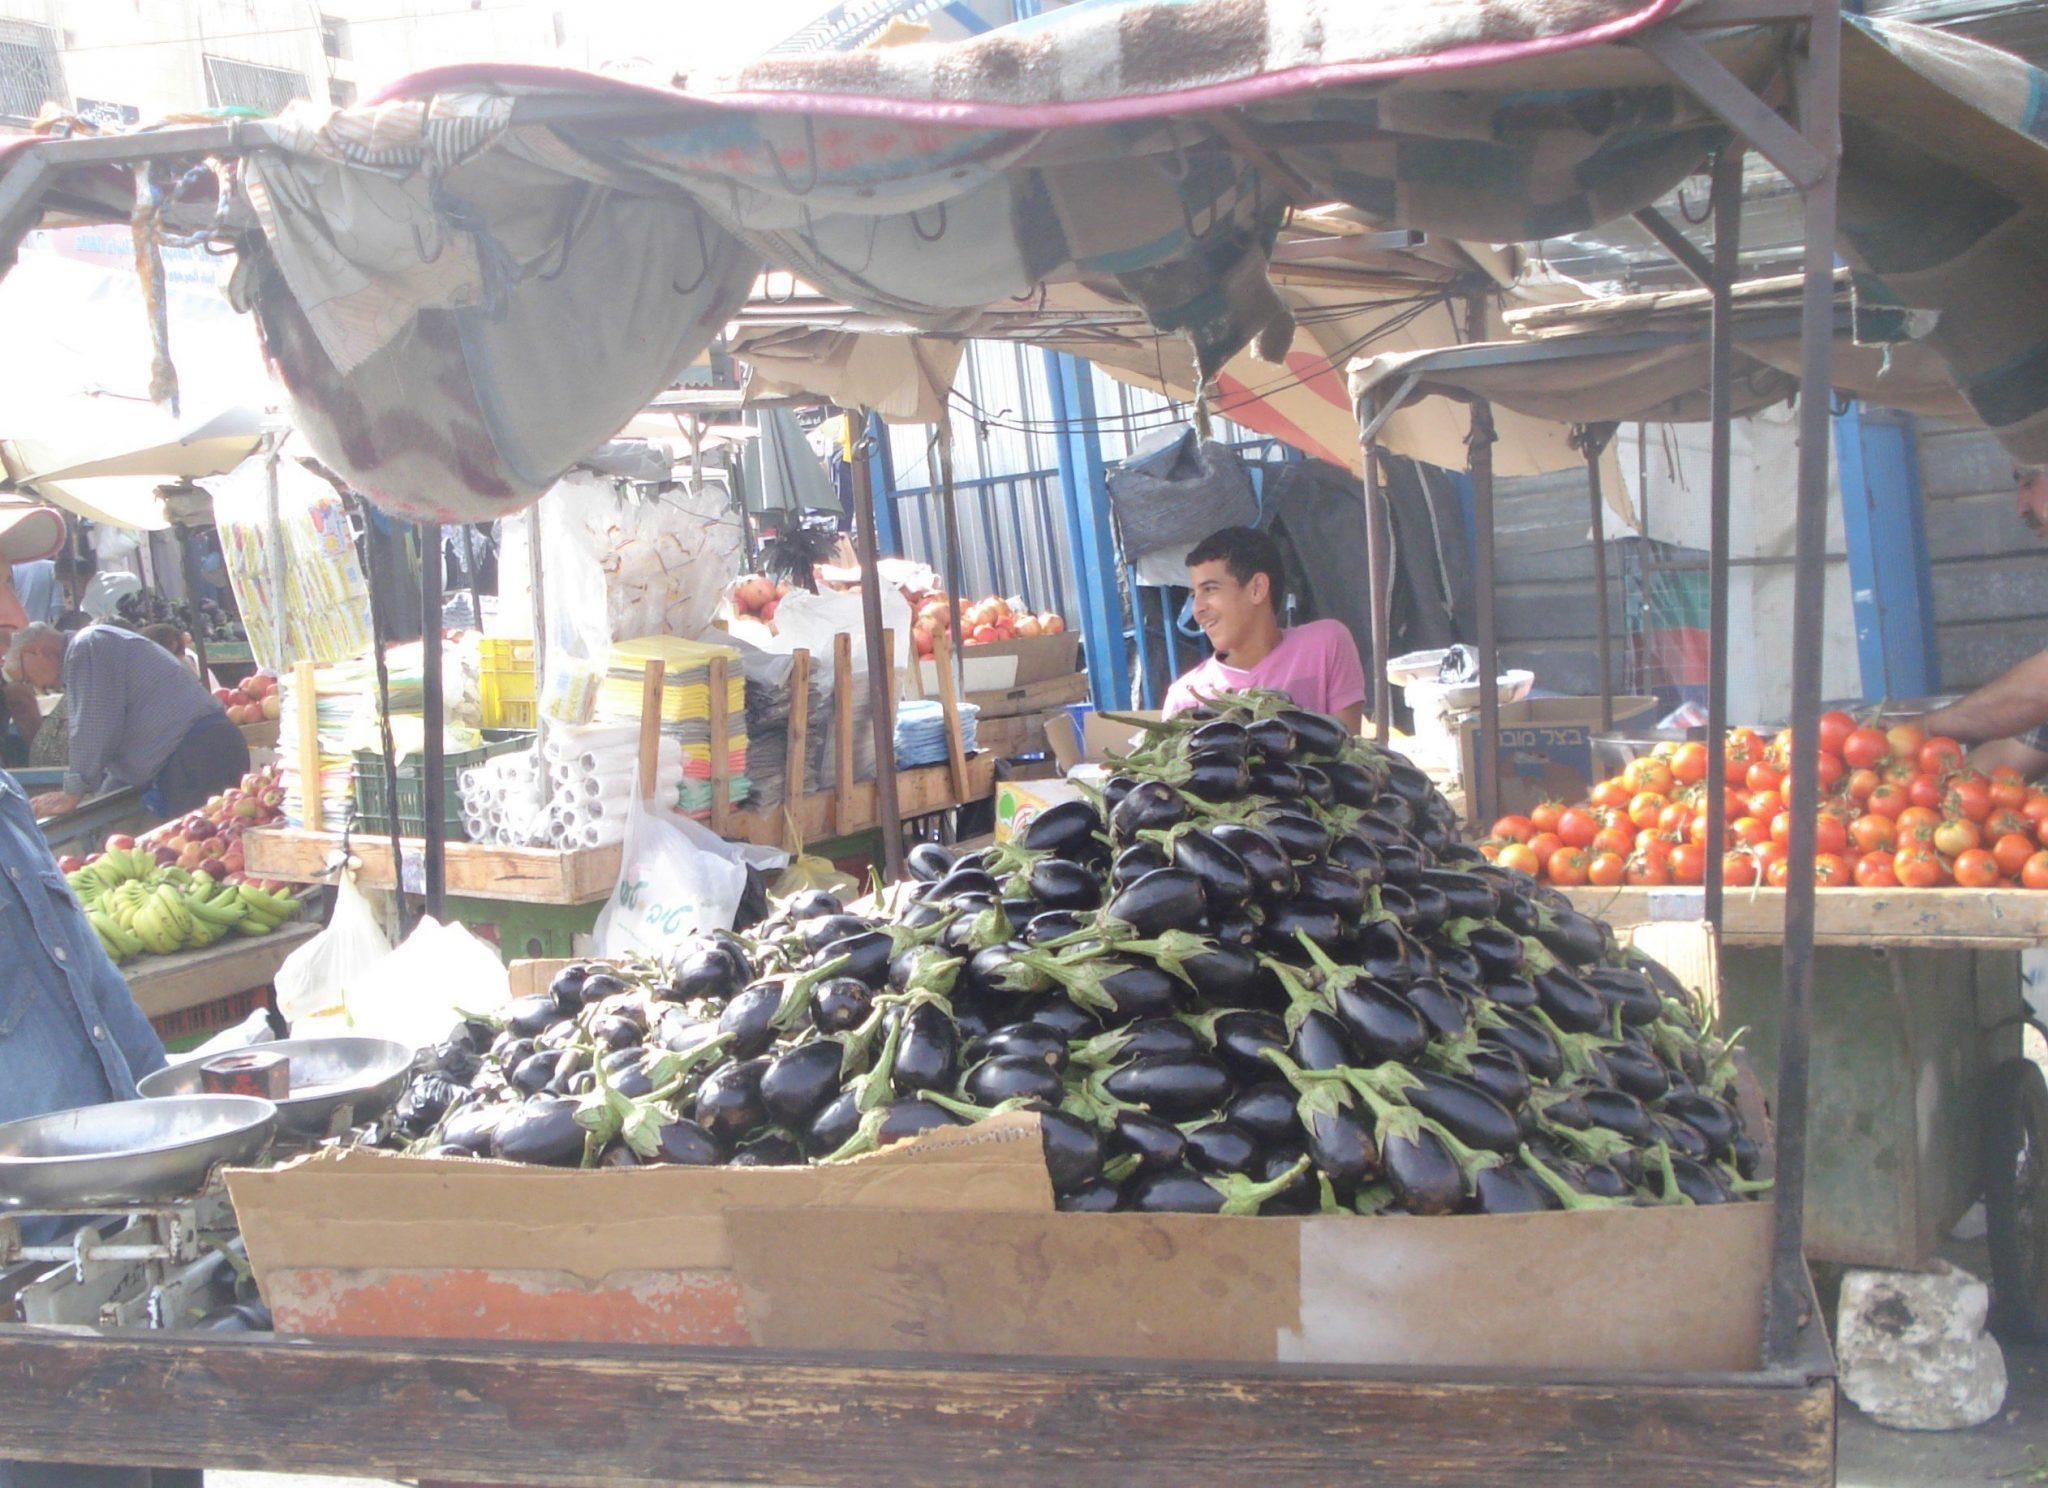 Eggplants for sale on a cart in the Middle East marketplace in Jenin, West Bank